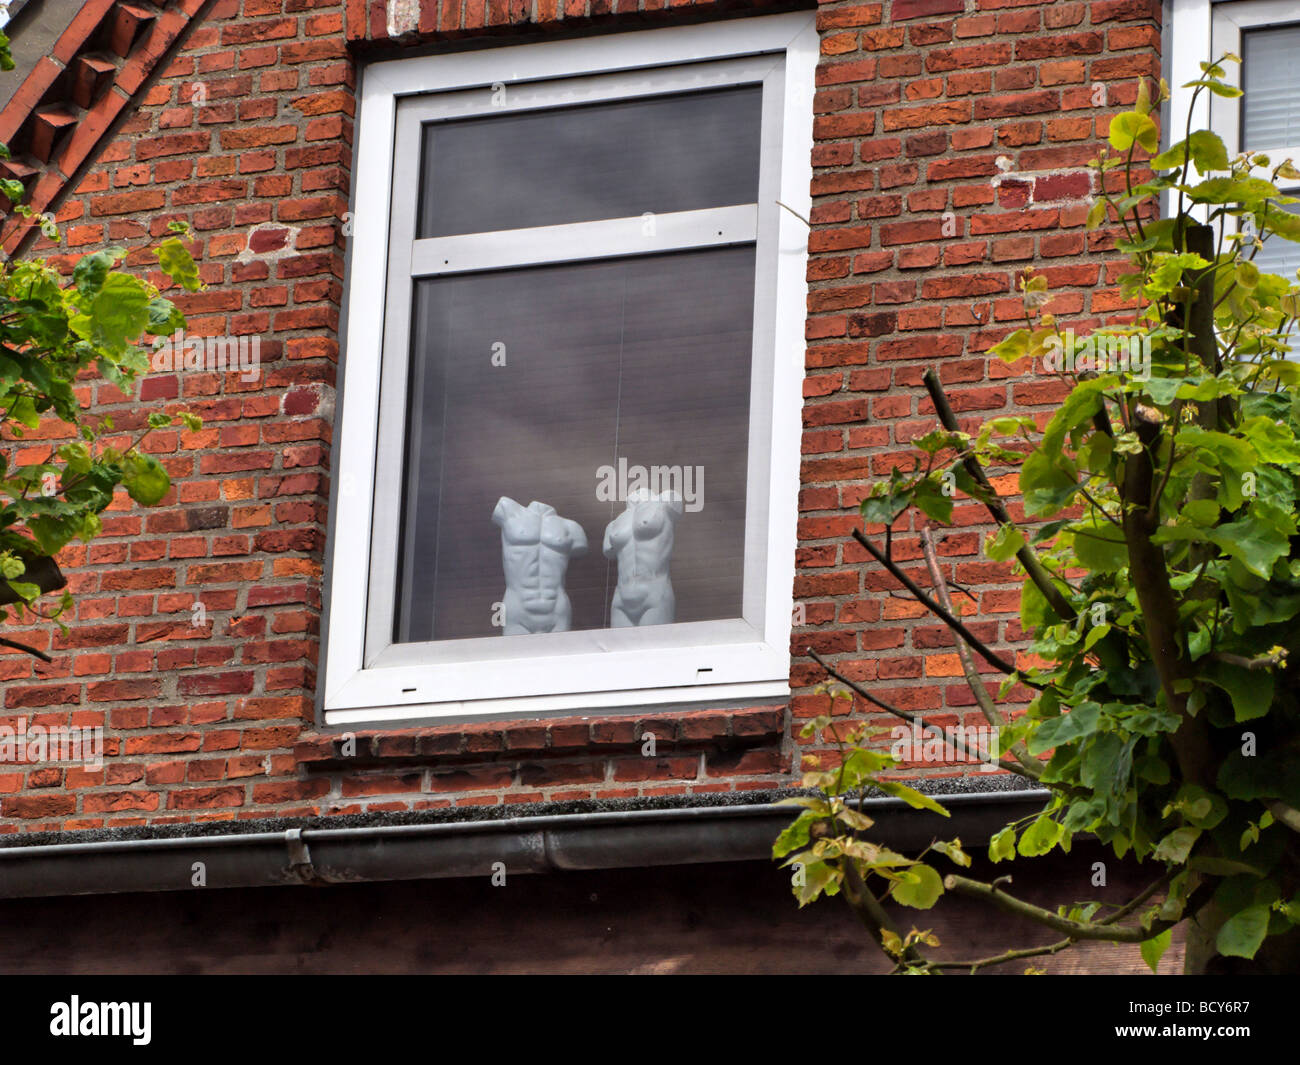 2 Headless Statues of the Human Anatomy in a Window in the Town of Wyk on the North Frisian Island of Fohr Germany - Stock Image